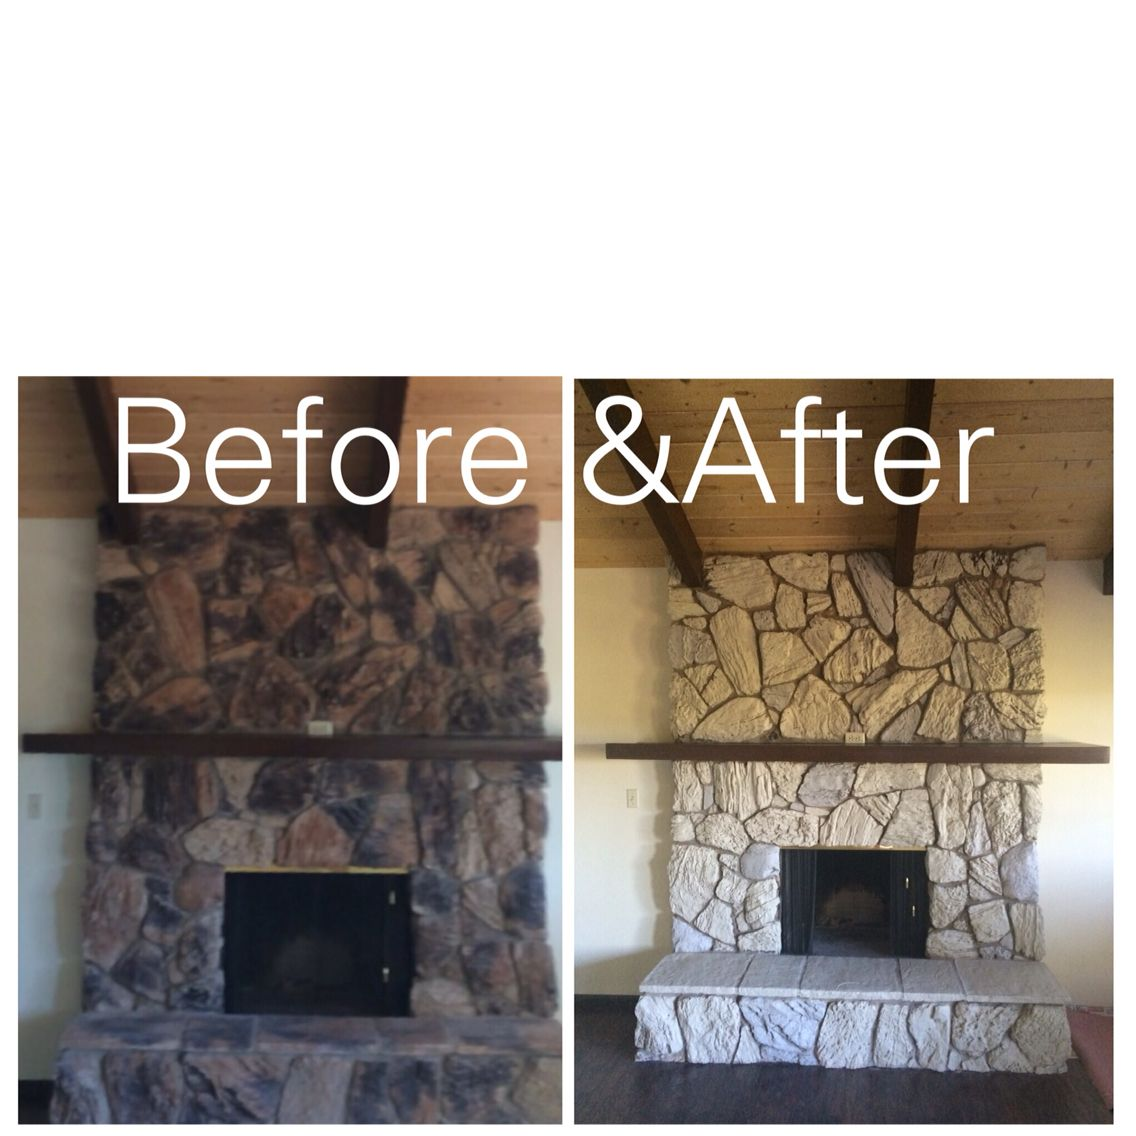 Here S An Inexpensive Way To Update Ugly Rock Fireplace From The 80 2 Colors Of Paint Were Used Benjamin Moore Glacial Till And Valspar Montpelier